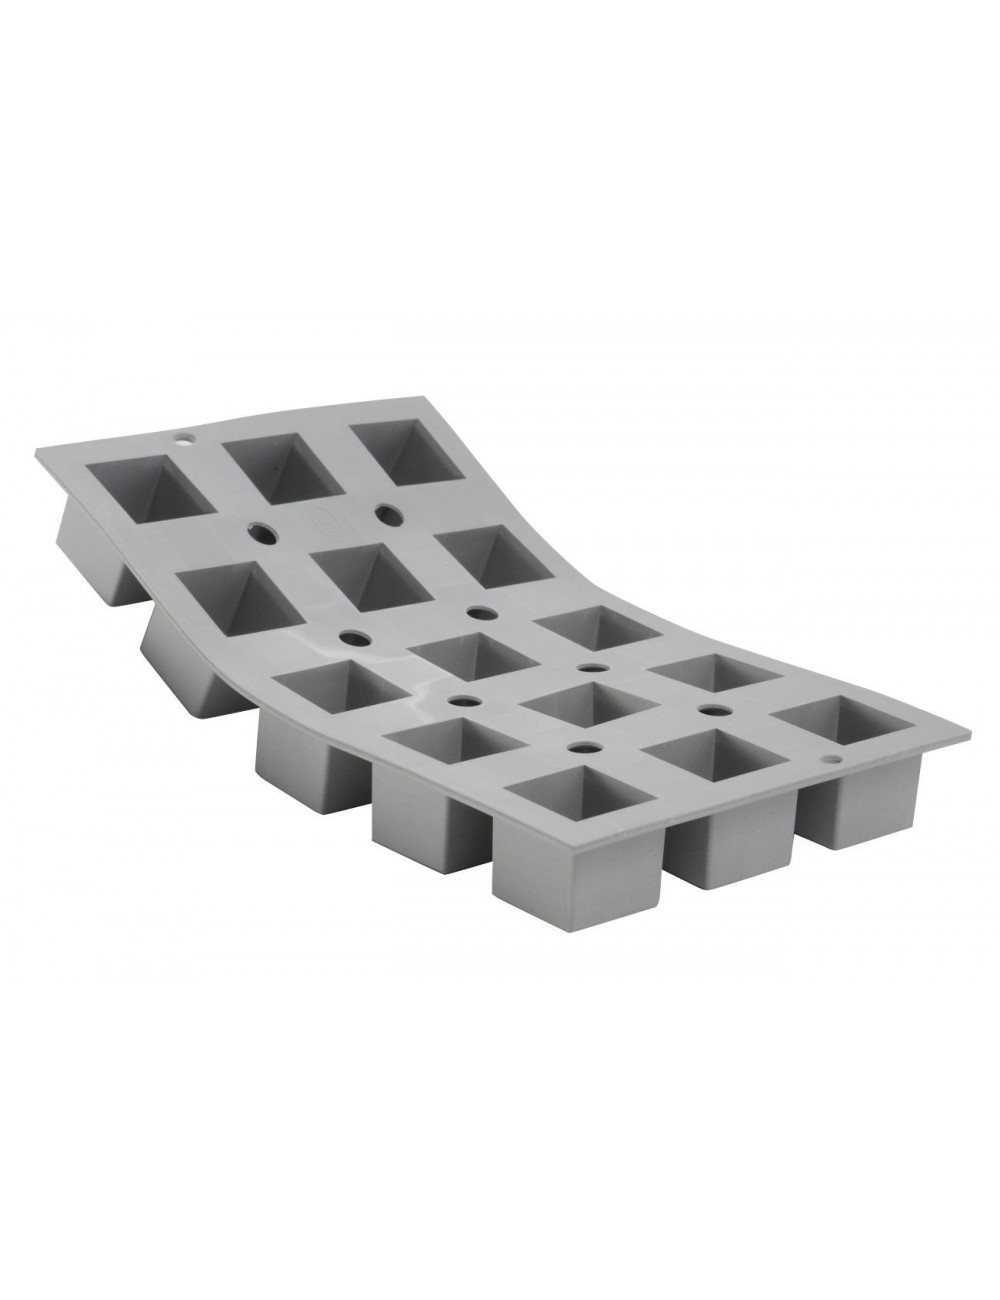 PLAQUE 1/3 ELASTOMOULE - 15 CUBES